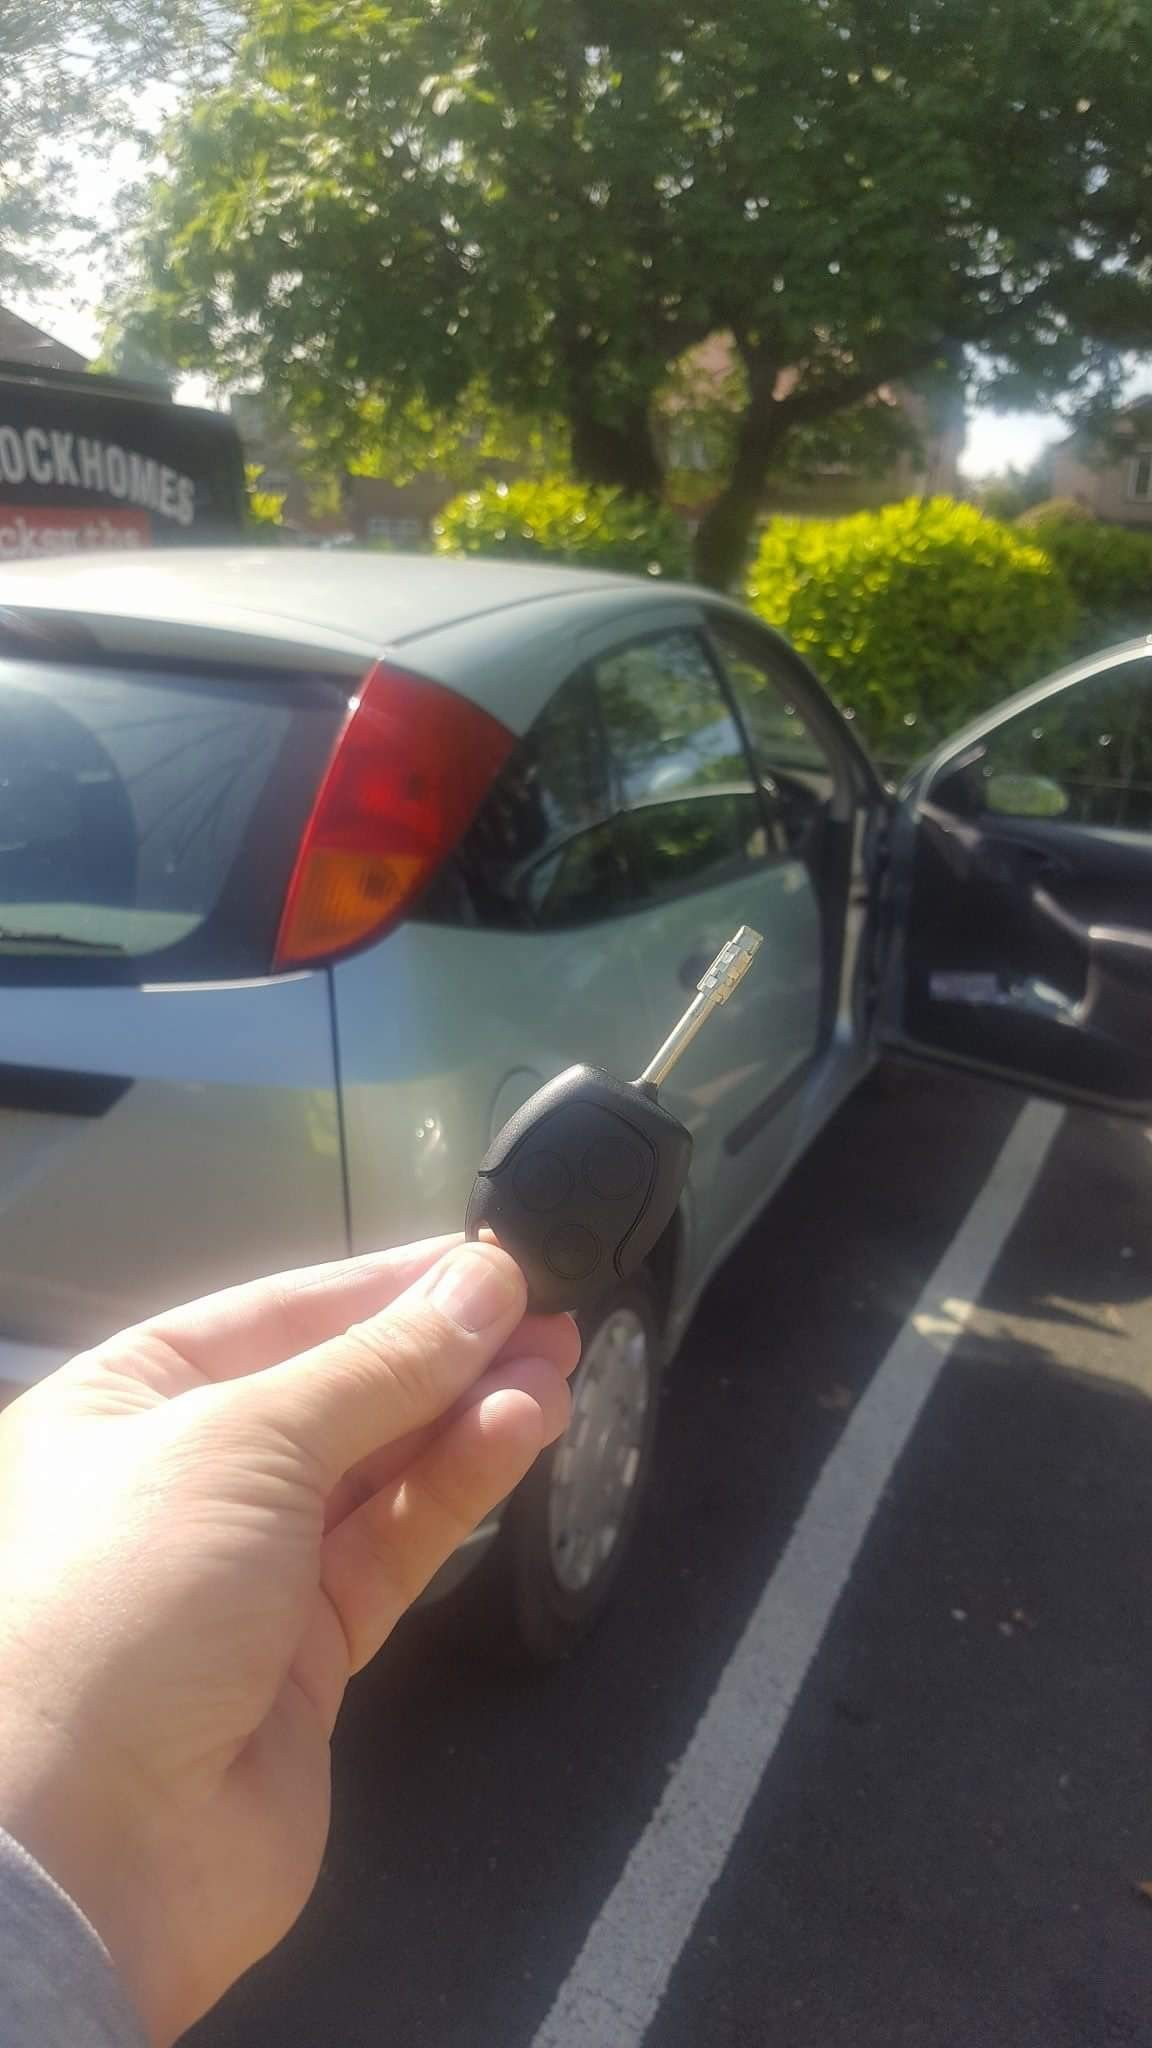 Replacement ford focus keys done in se car key replacements